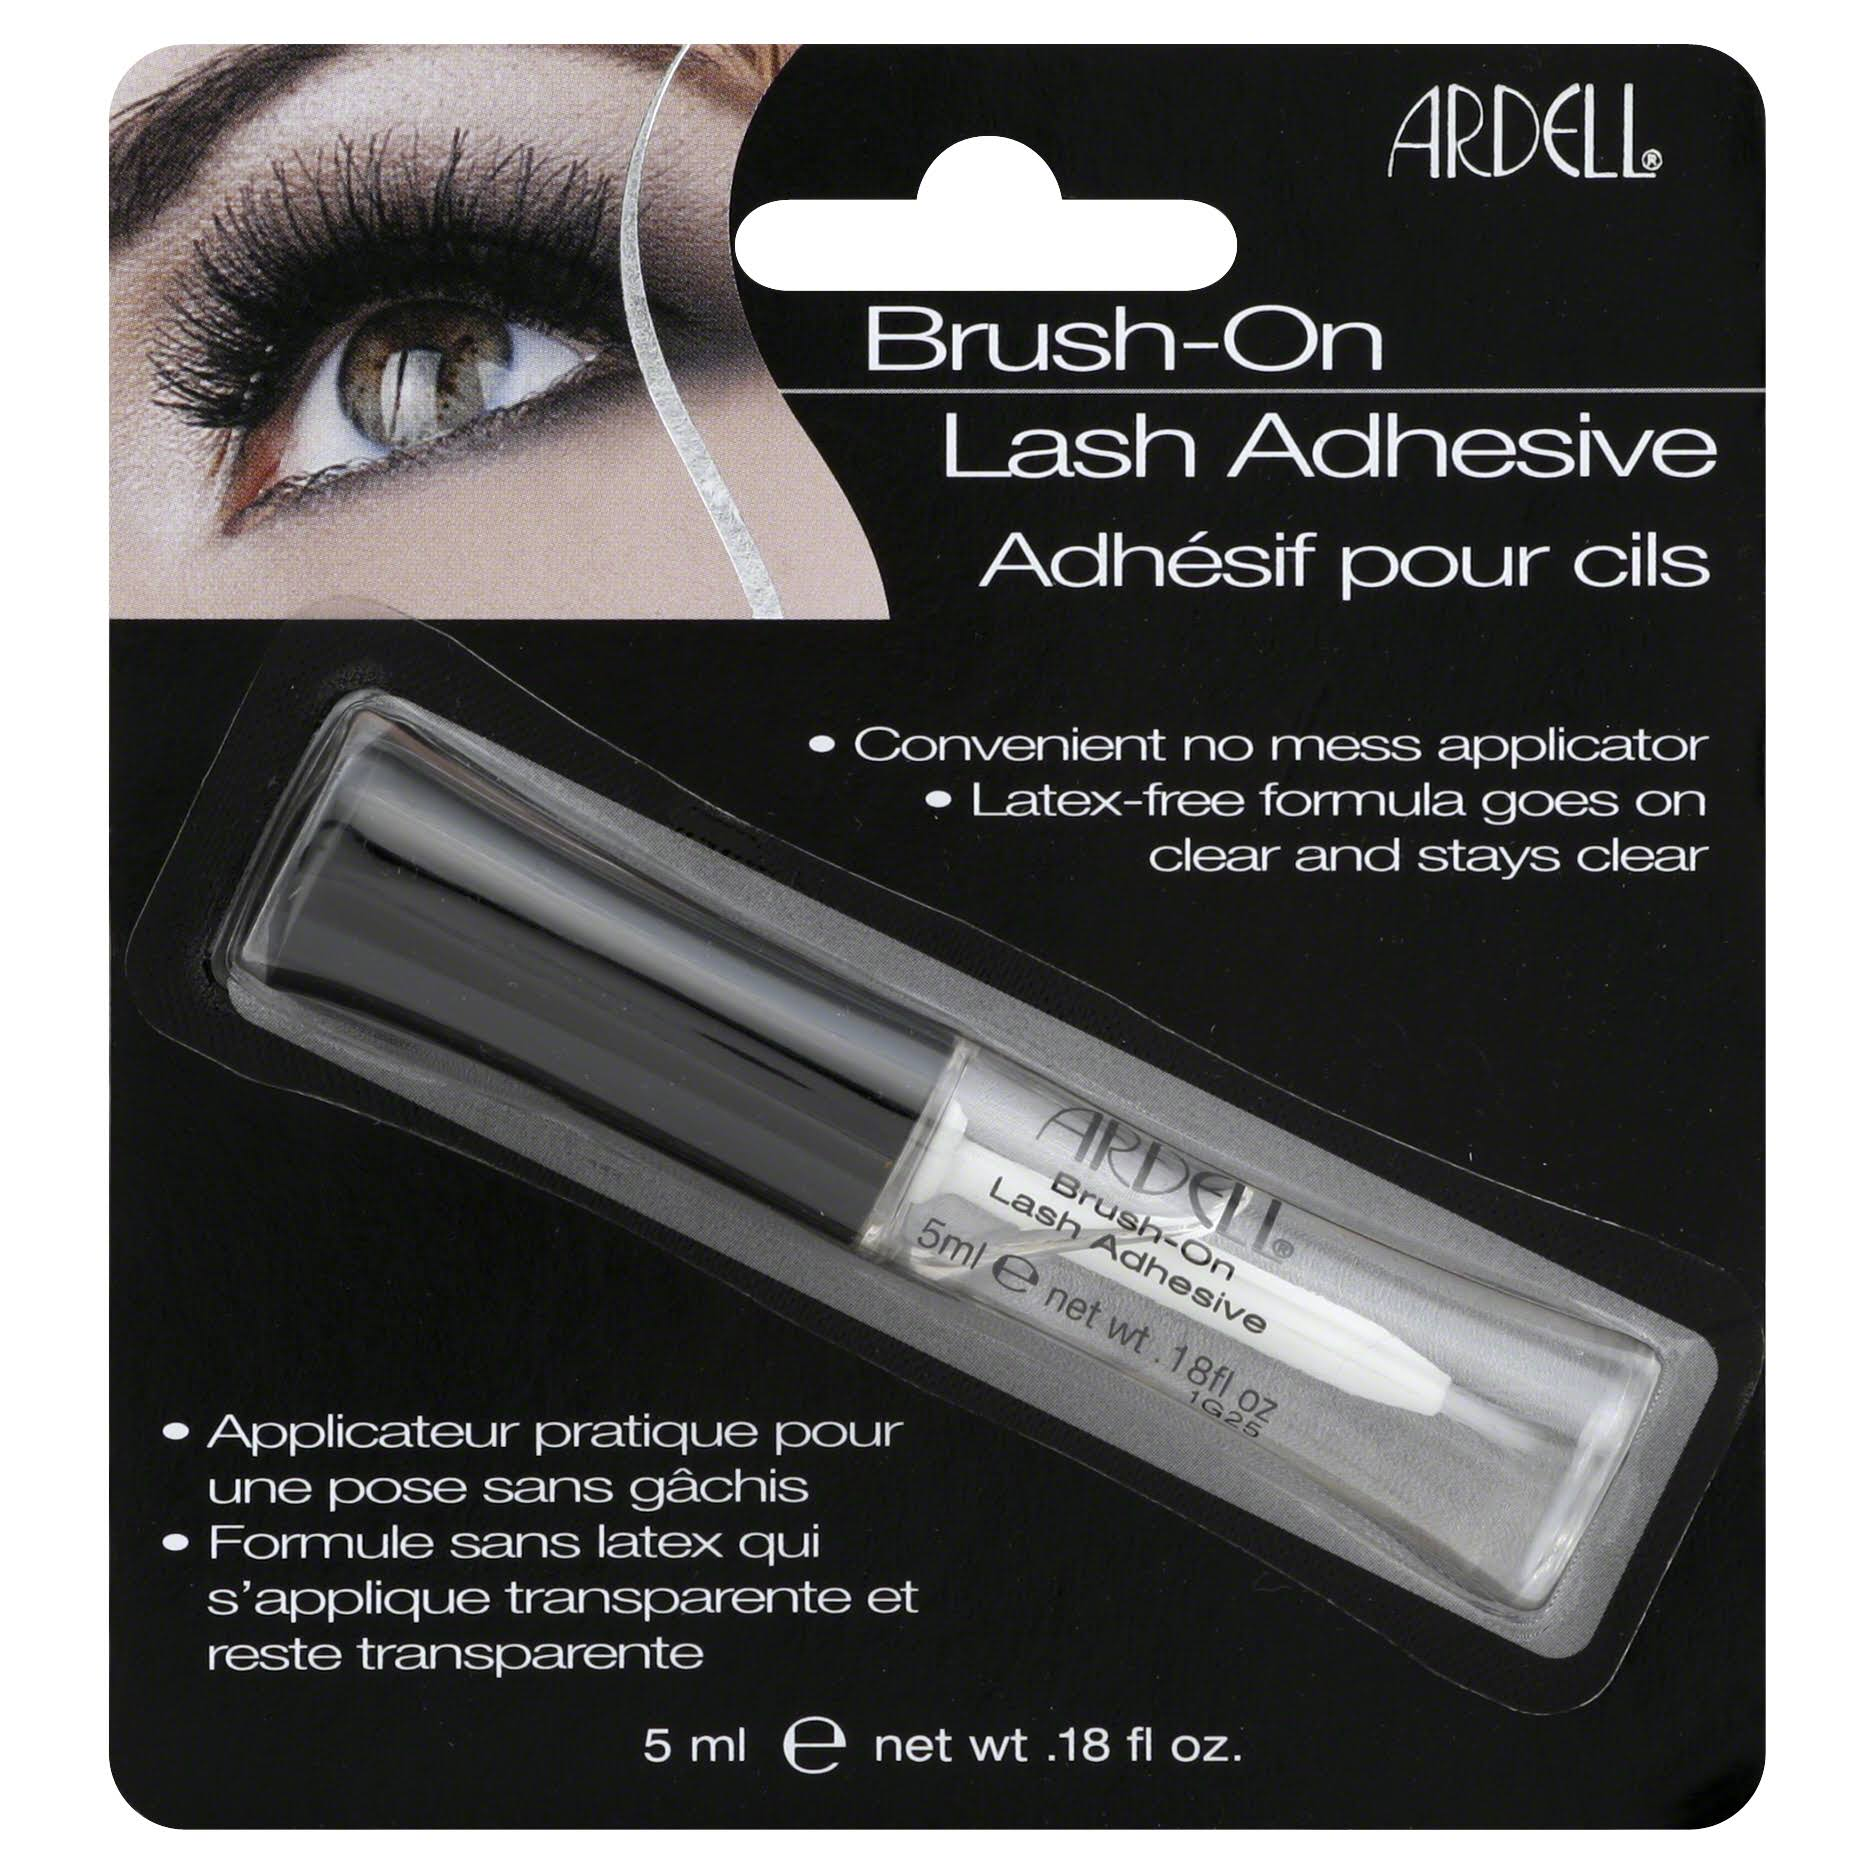 Ardell Brush On Lash Adhesive - 5ml